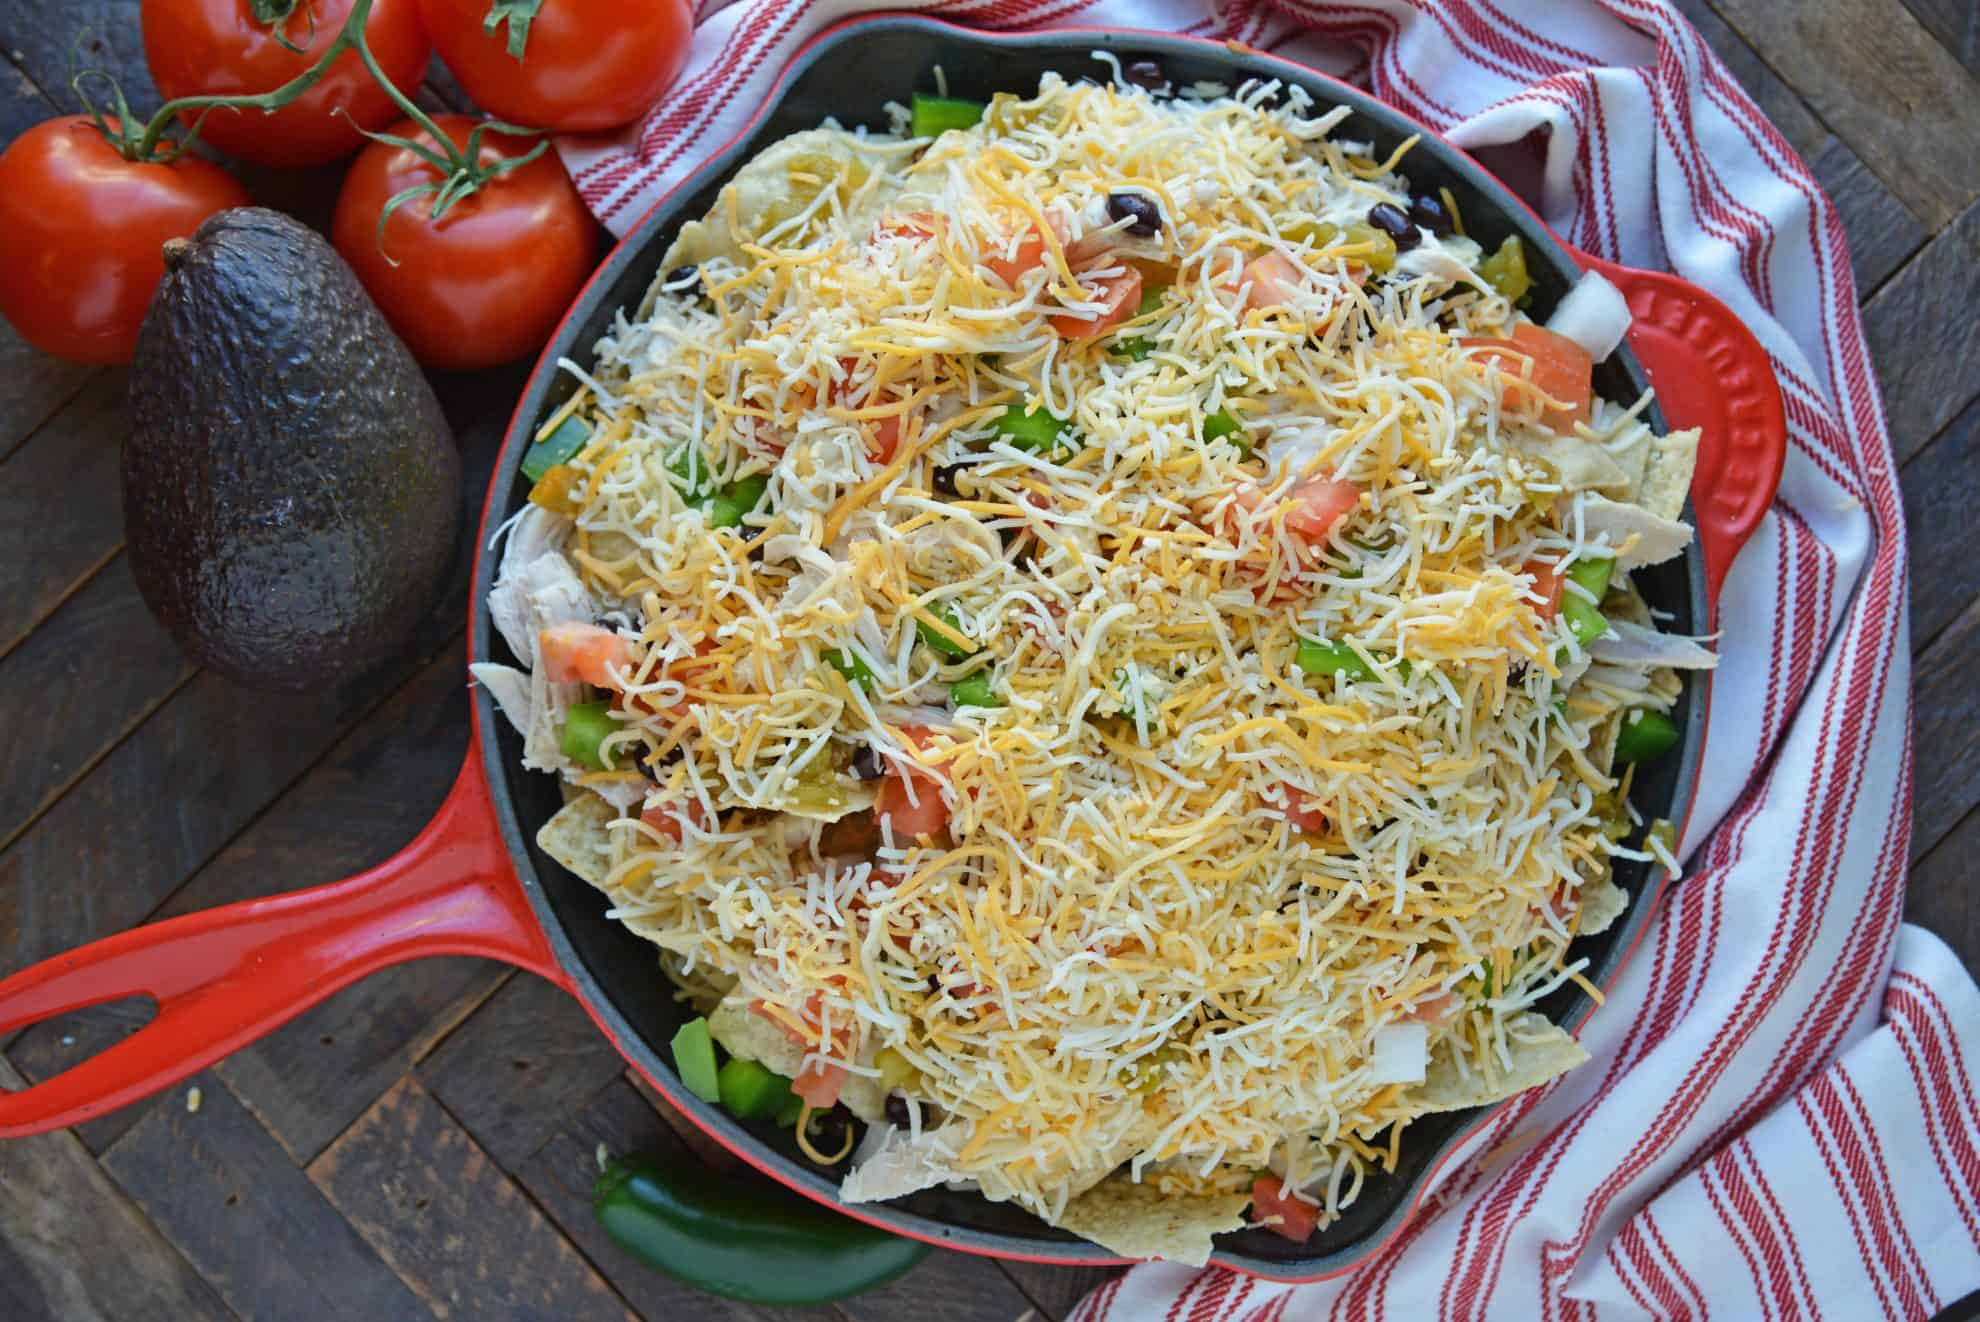 Top skillet nachos with cheese